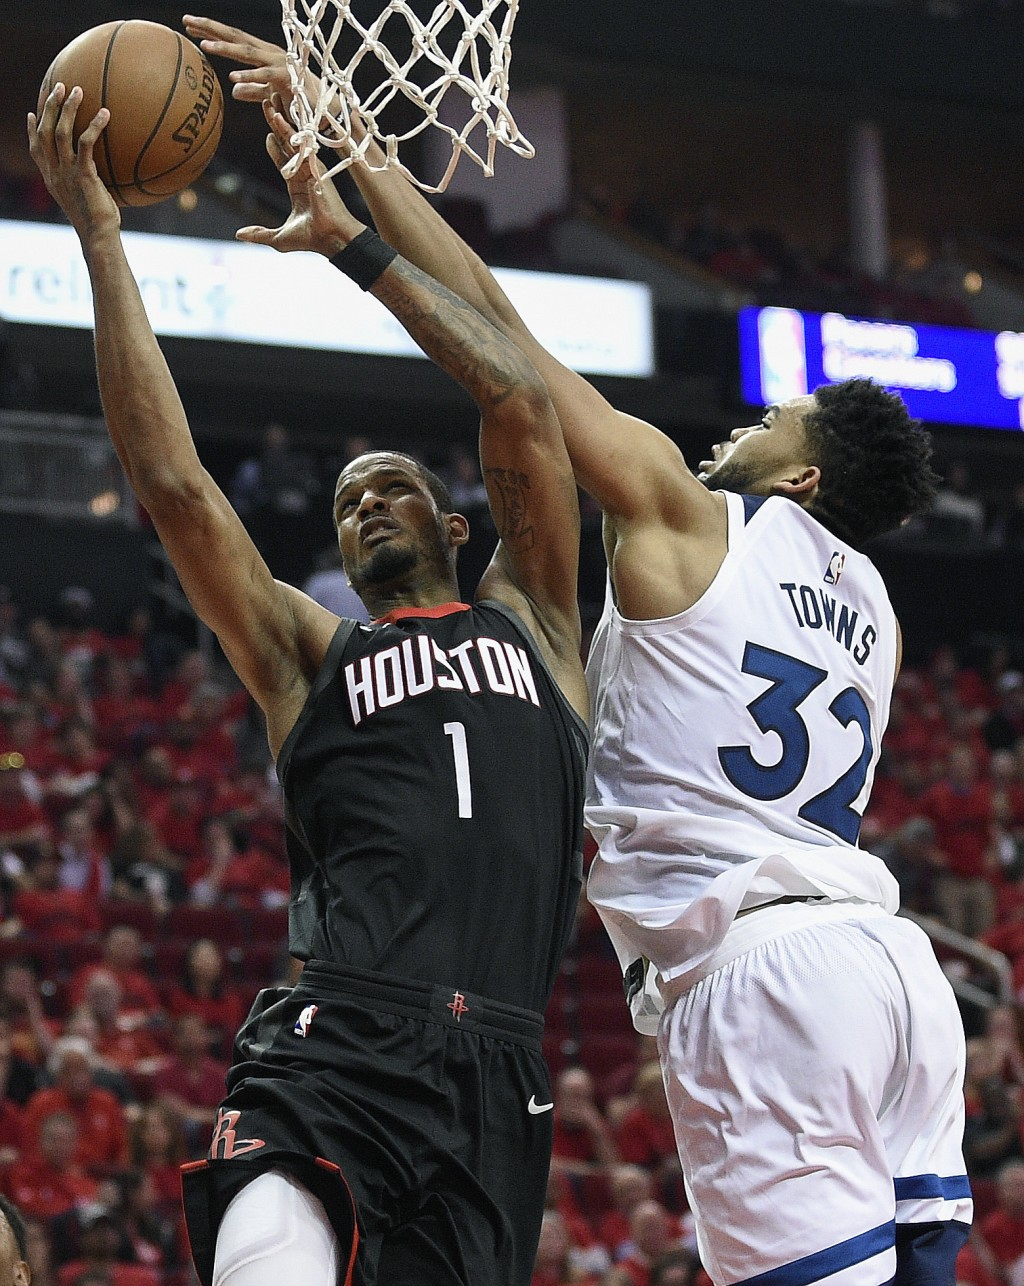 Minnesota Timberwolves center Karl-Anthony Towns, right, blocks the shot of Houston Rockets forward Trevor Ariza during the second half in Game 5 of a...